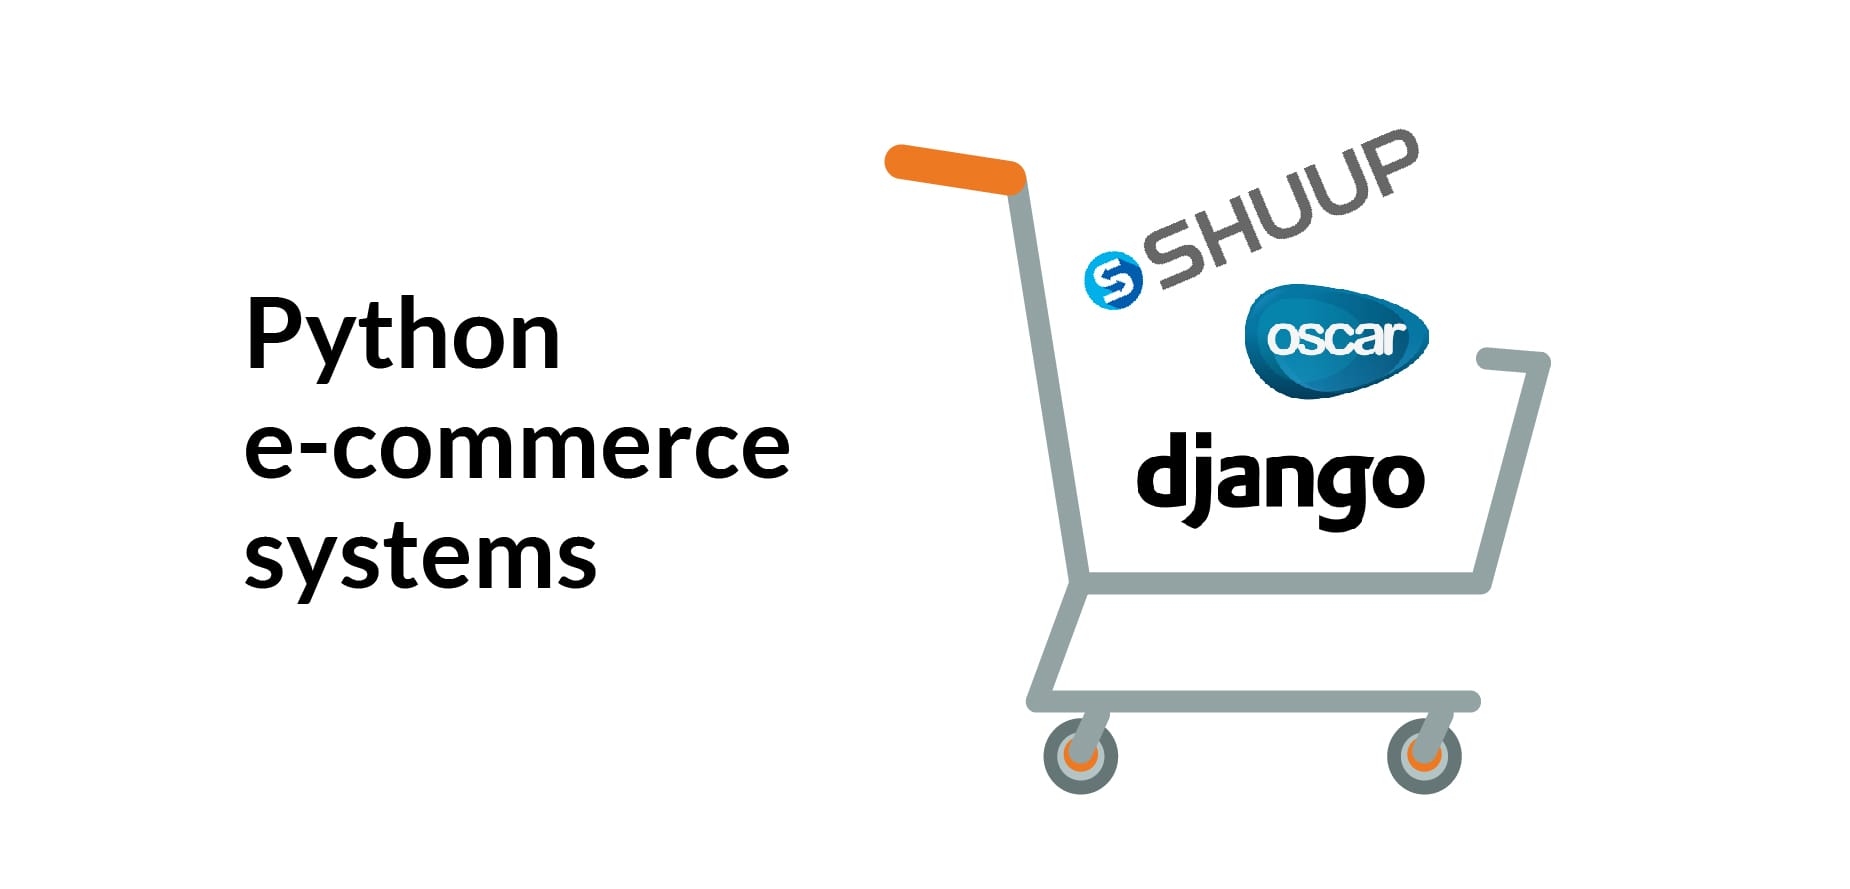 Python e-commerce systems